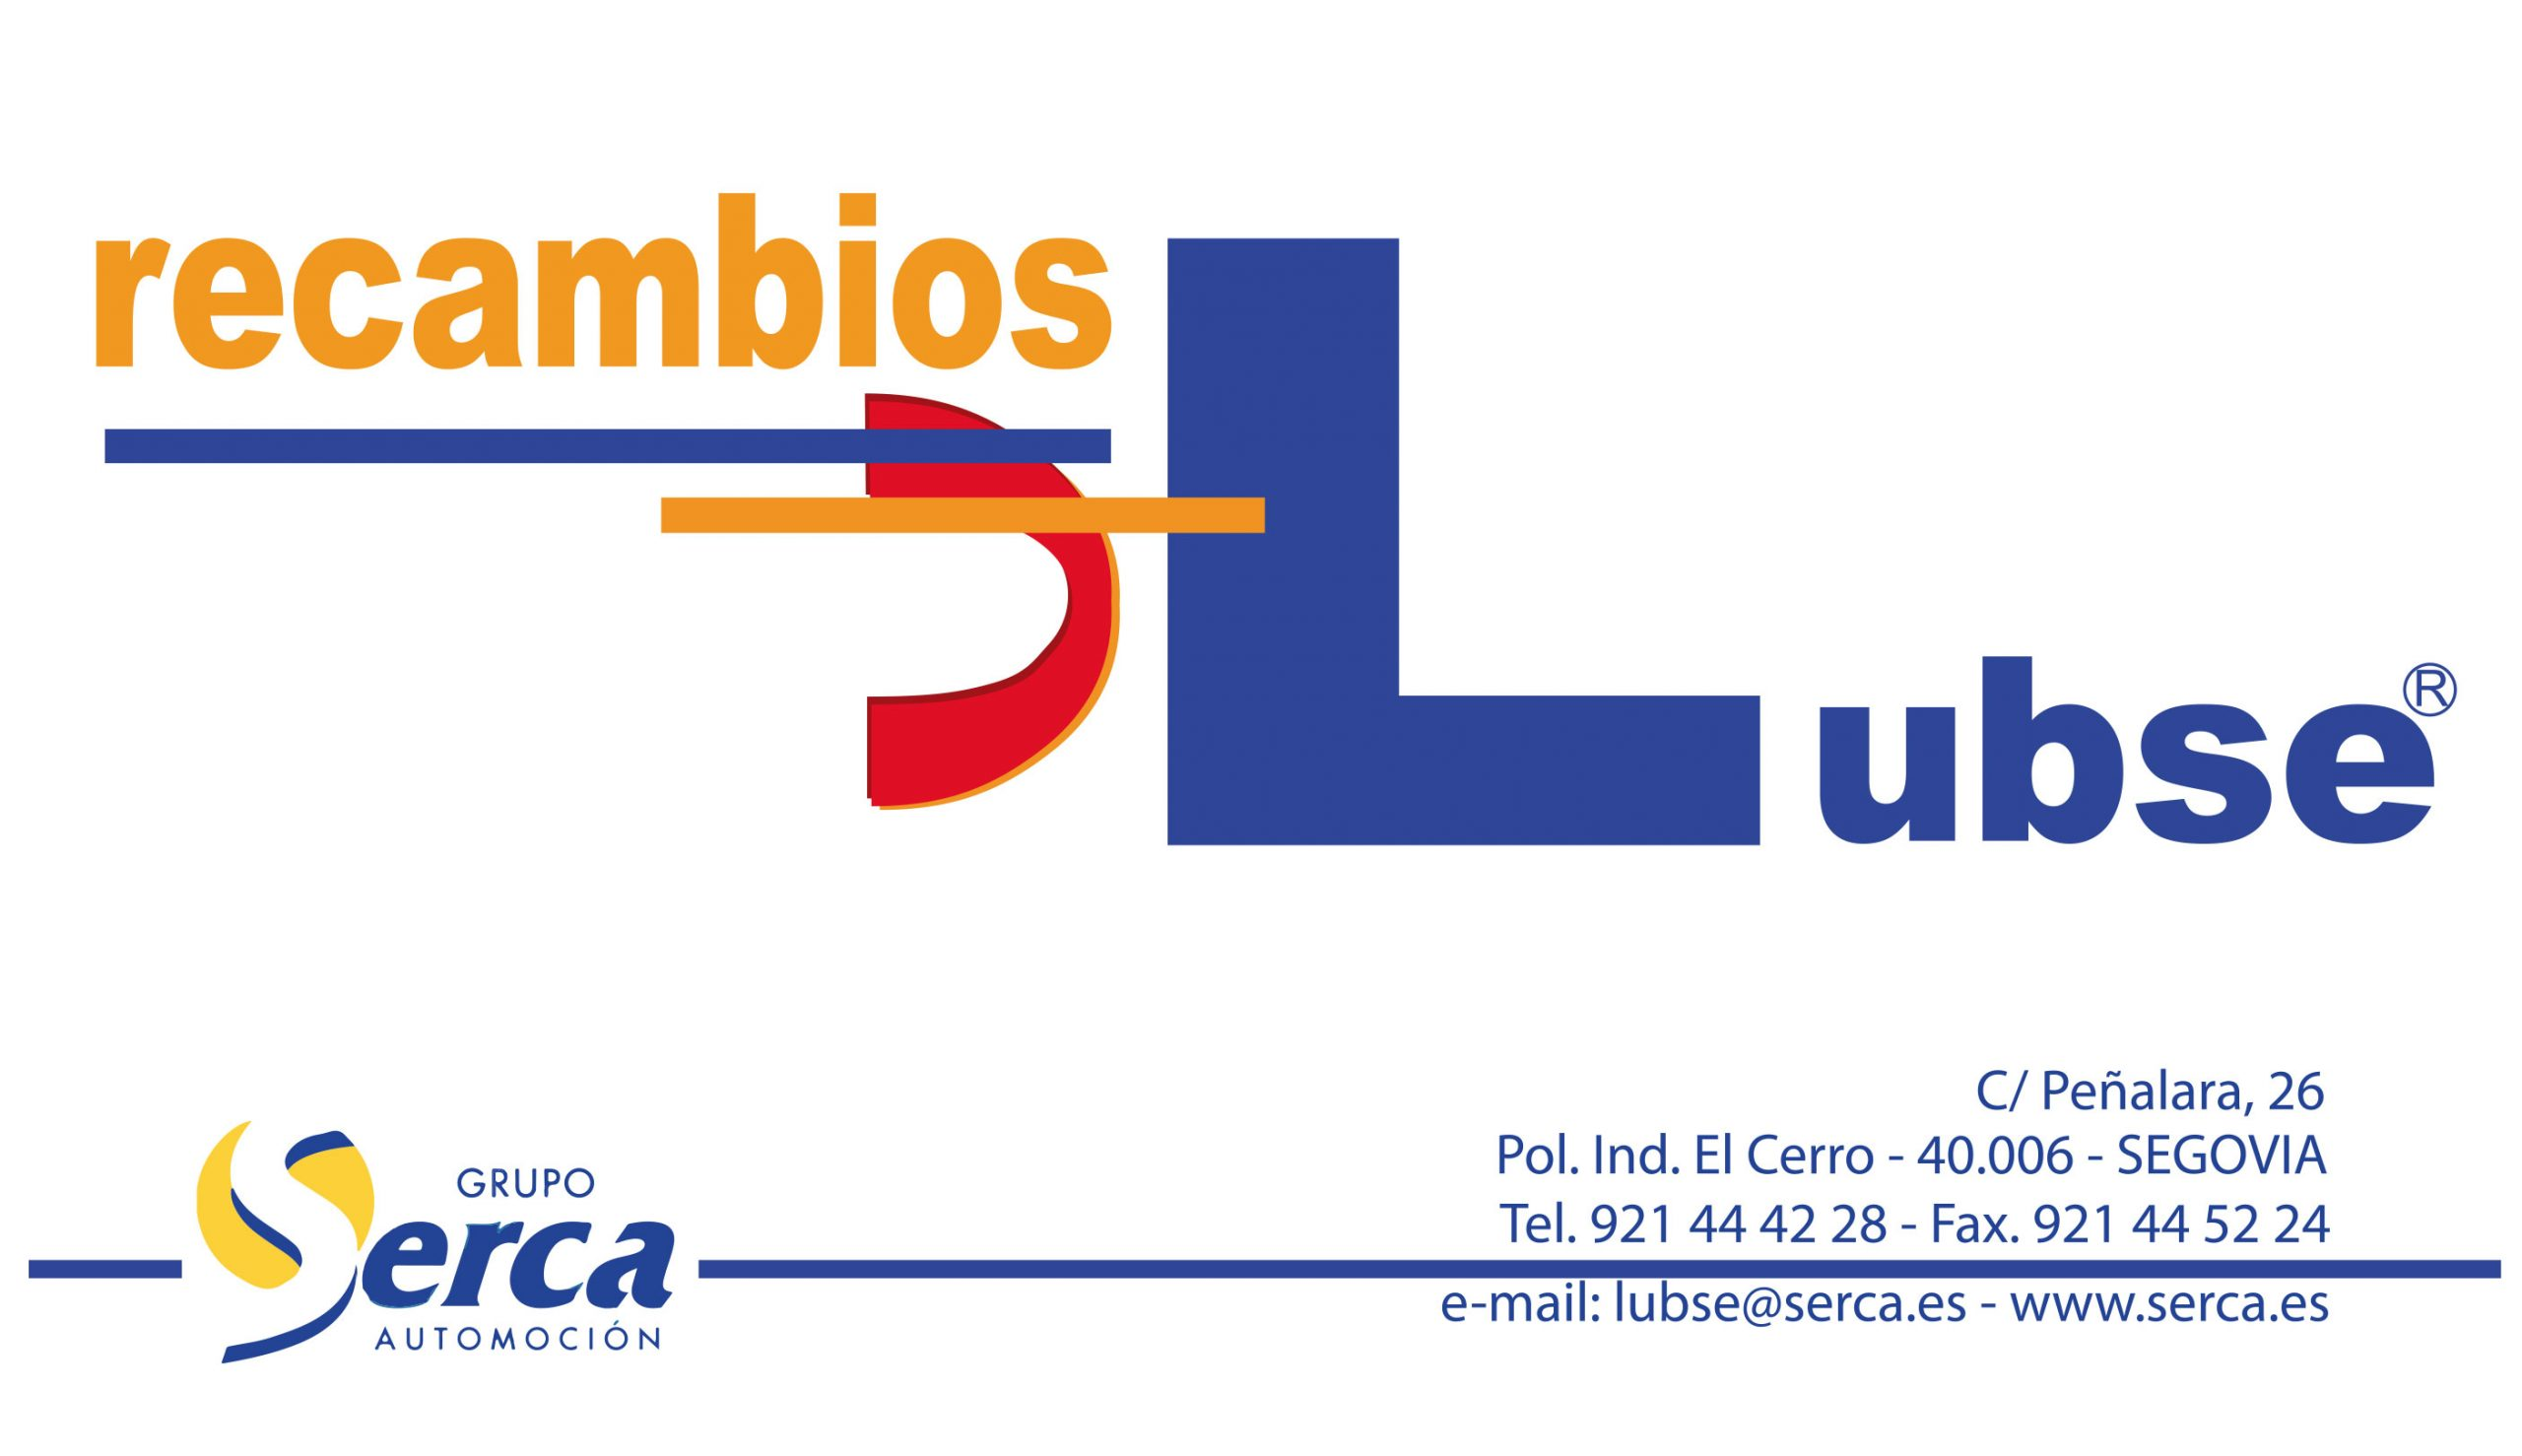 Recambios_Lubse